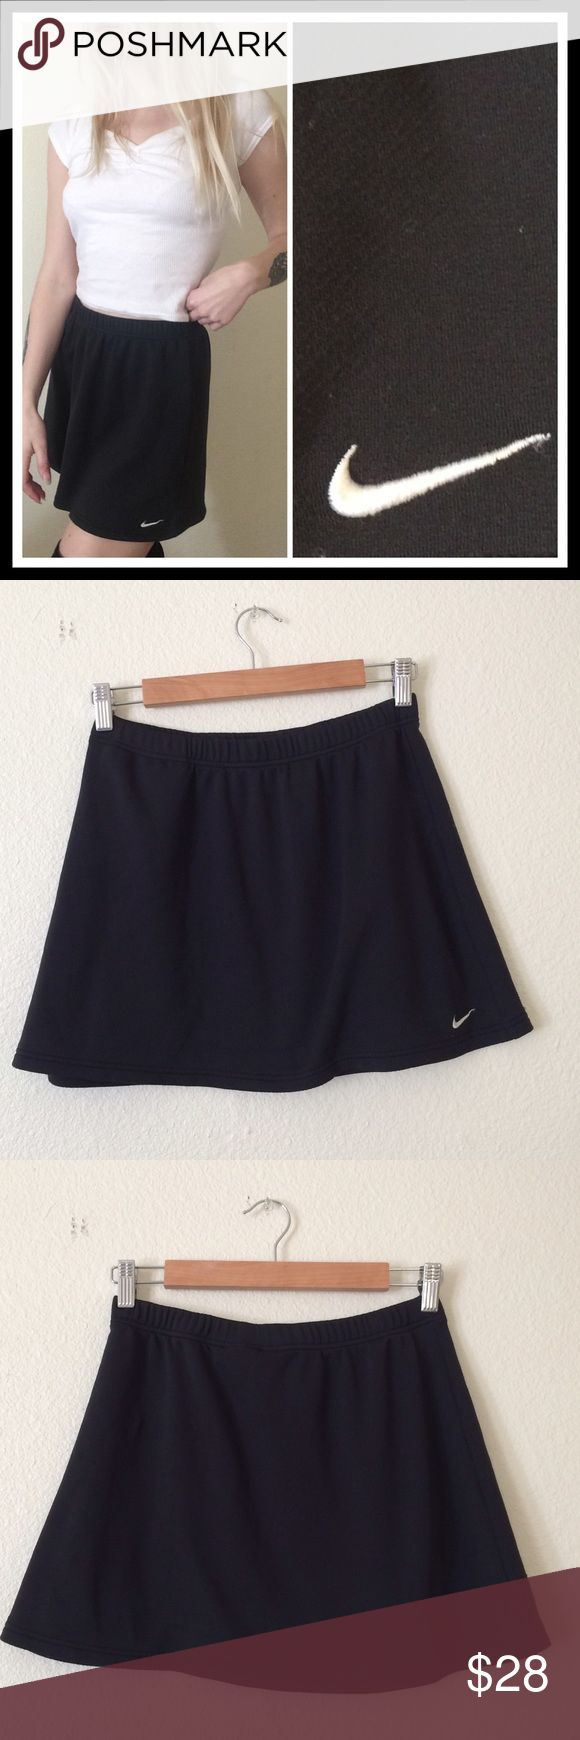 "•90's VTG Nike Athletic Mini Skirt• •MEASUREMENTS• Waist- 26"" Length- 14""  •DETAILS • •Model is 5' 5"" and is a size XS• Elastic waistband• A little big on model (who has a 24"" waist for reference) but still wearable• Minimal pilling in some spots (example pictured)• tagged as size Small (4-6)•  ••NO TRADES•• #90s #grunge #goth #workout #athletic #skirt #minimal #simple #tennis Nike Skirts Mini"